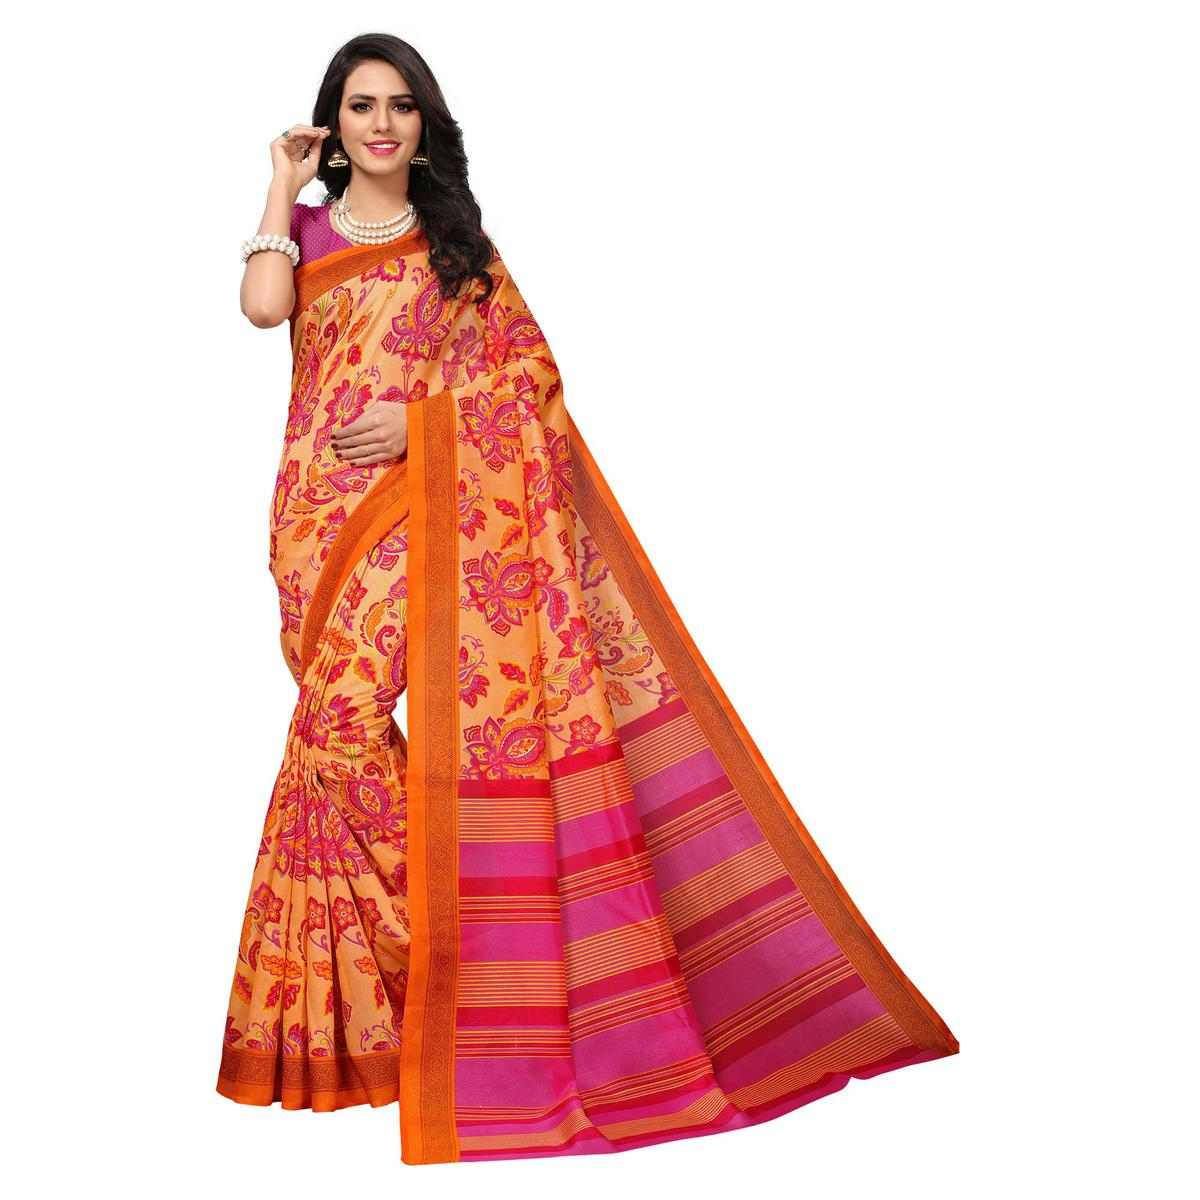 Impressive Orange Colored Floral Printed Banglori Silk Saree